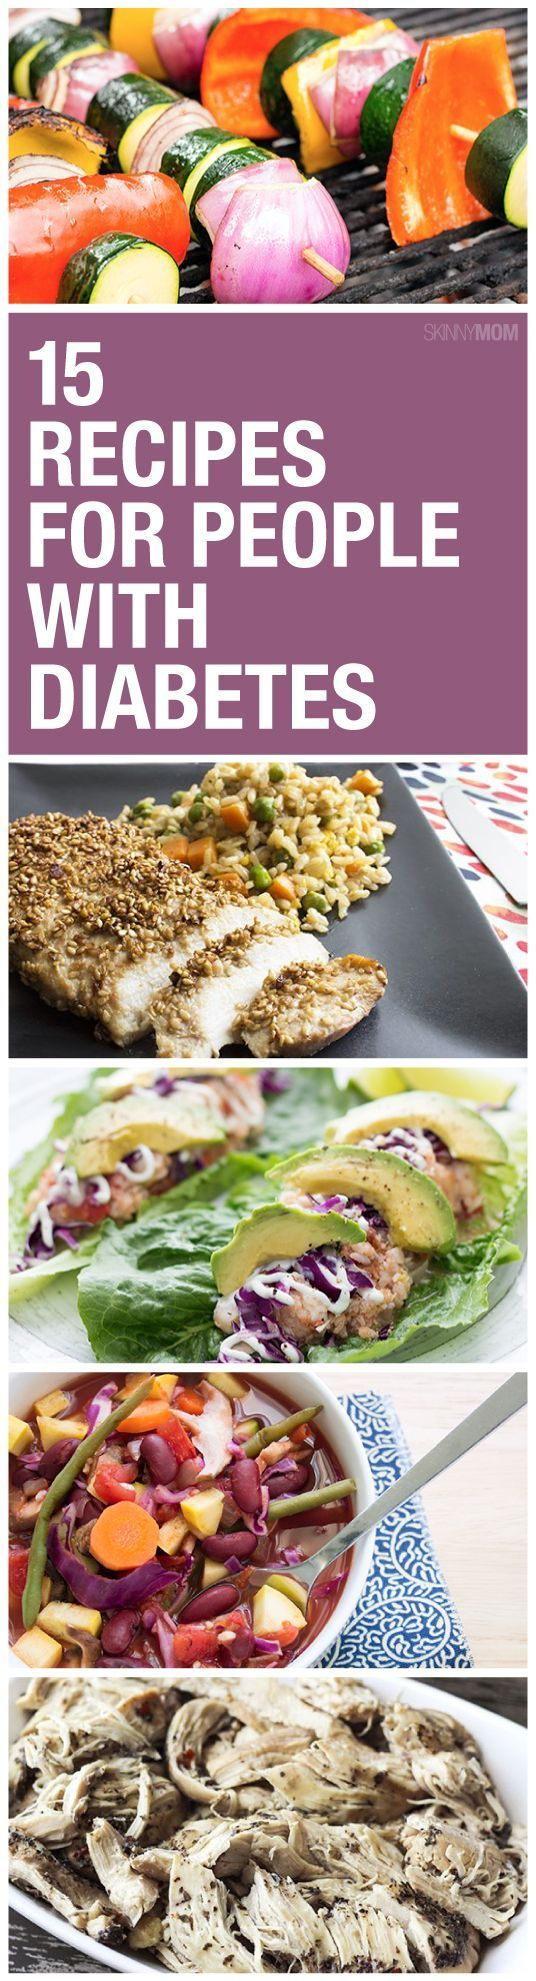 15 recipes for people with diabetes diabetic friendly recipes and these recipes are not only healthy and diabetic friendly but they actually taste good forumfinder Gallery